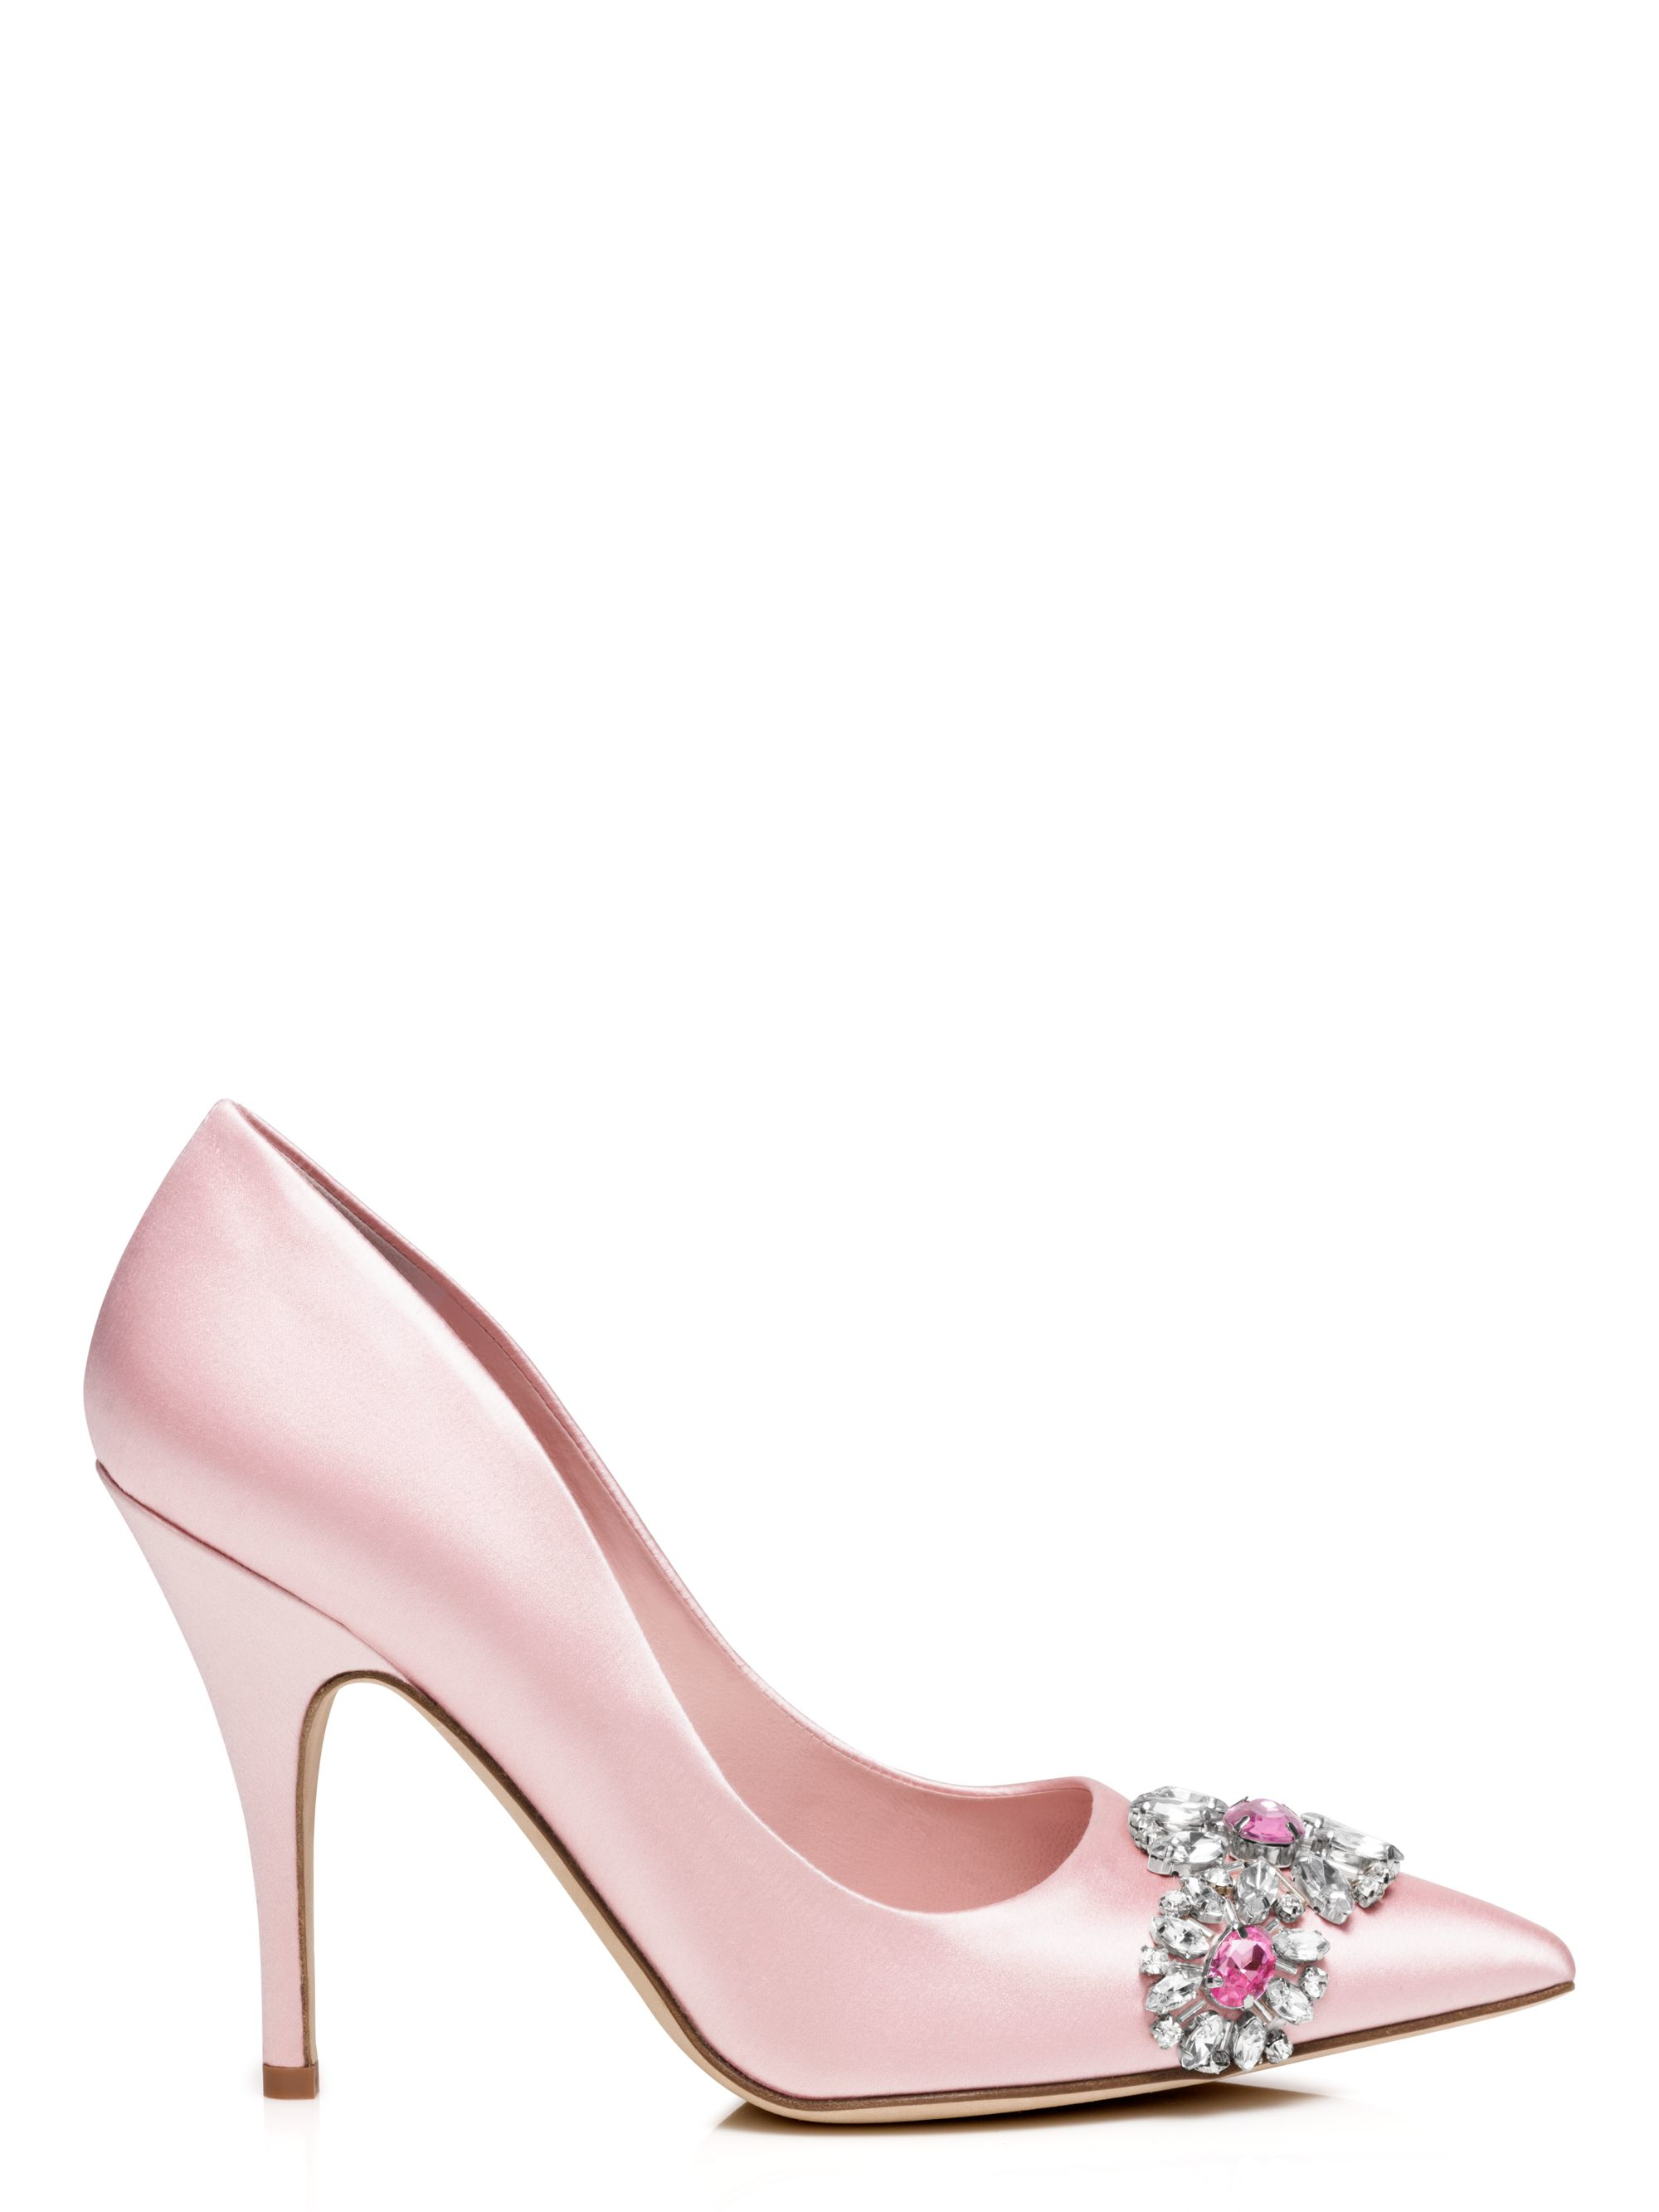 4d8be210e61a Kate Spade Larsa Heels in Pink - Lyst